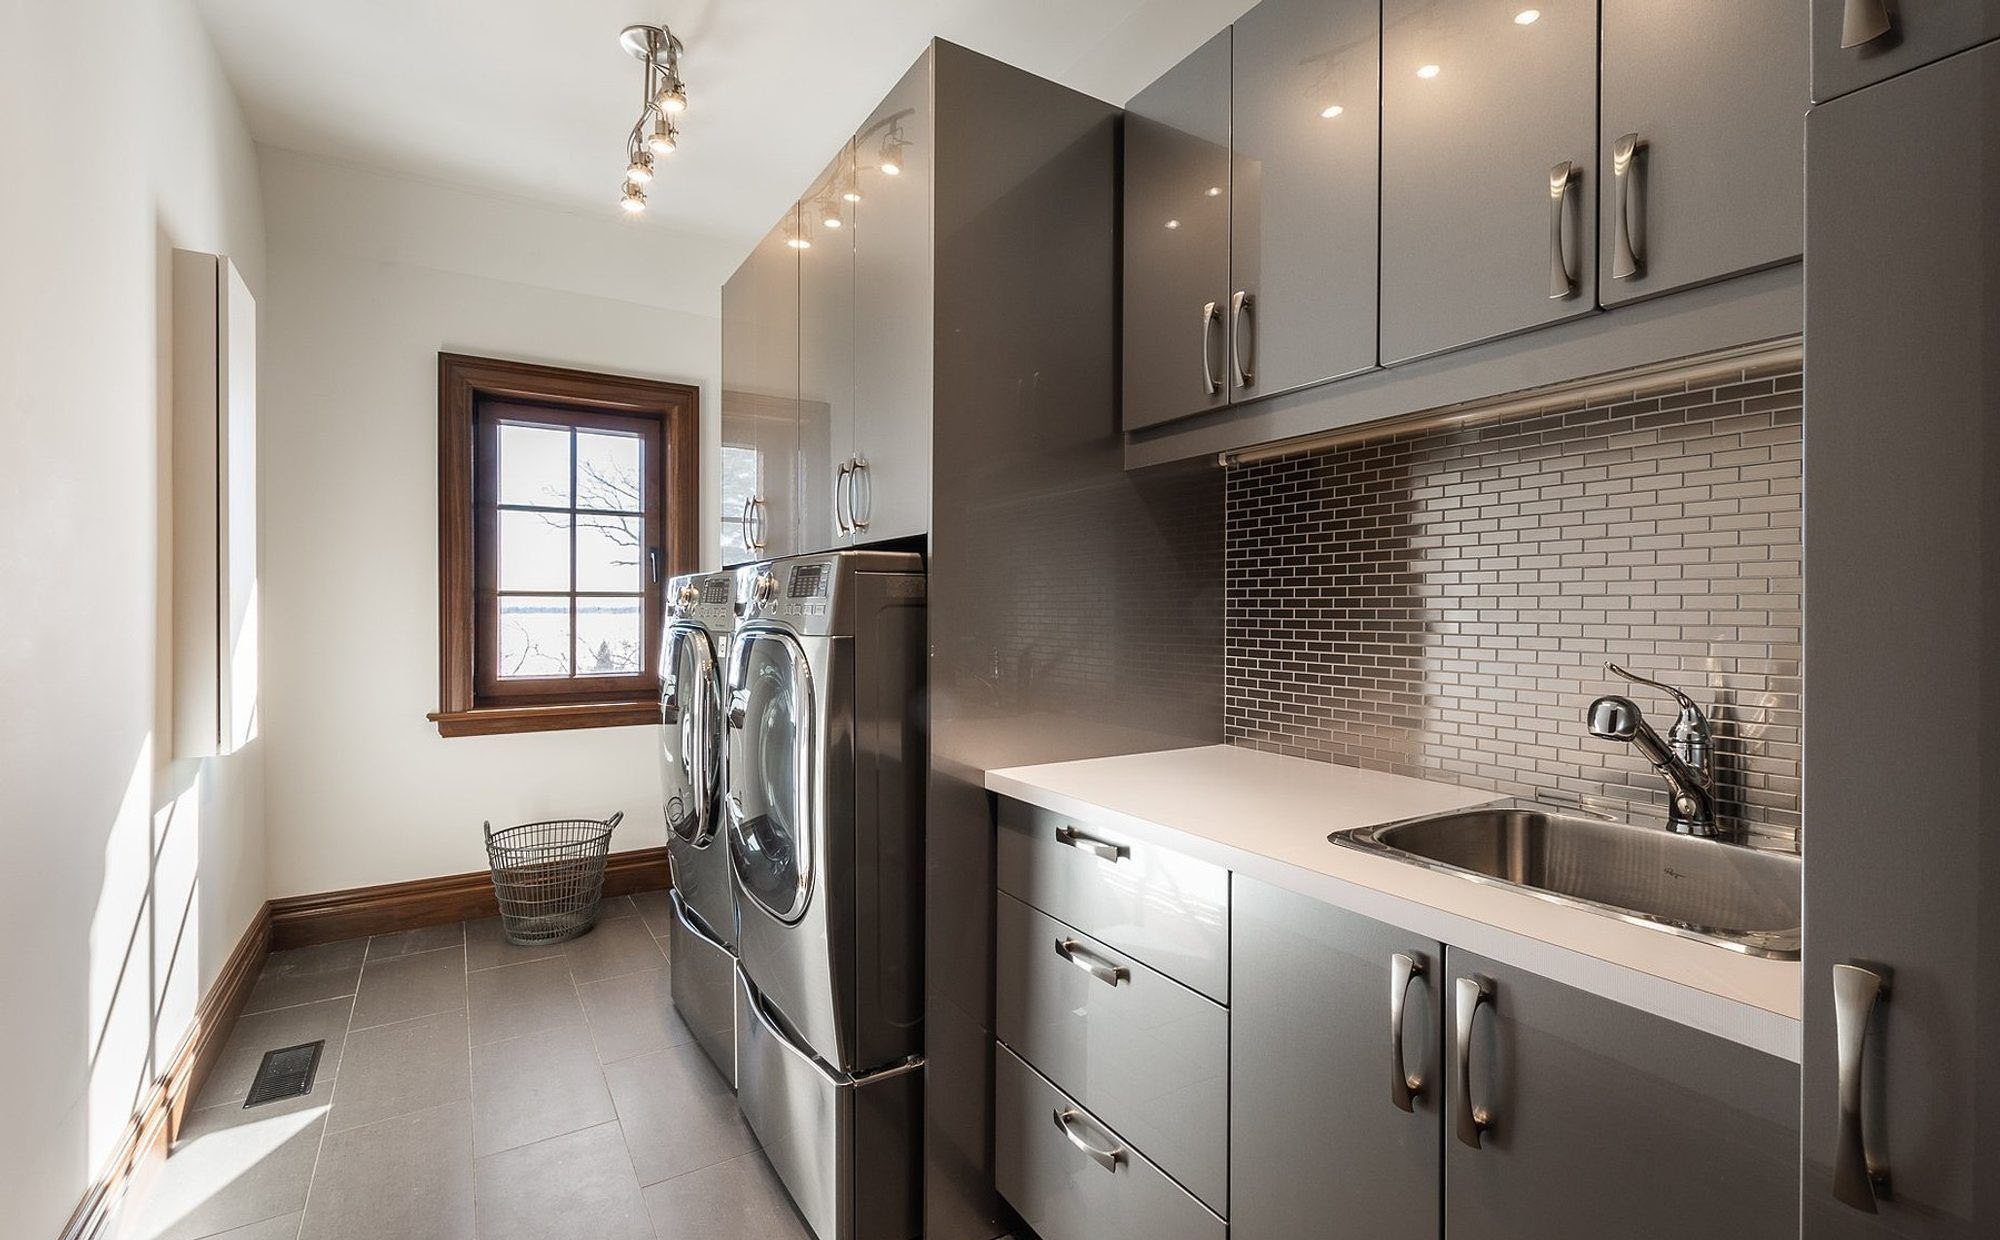 Steel colored laundry room with shiny grey cabinetry, grey tile floors, grey washer/dryer and a stainless steel sink.